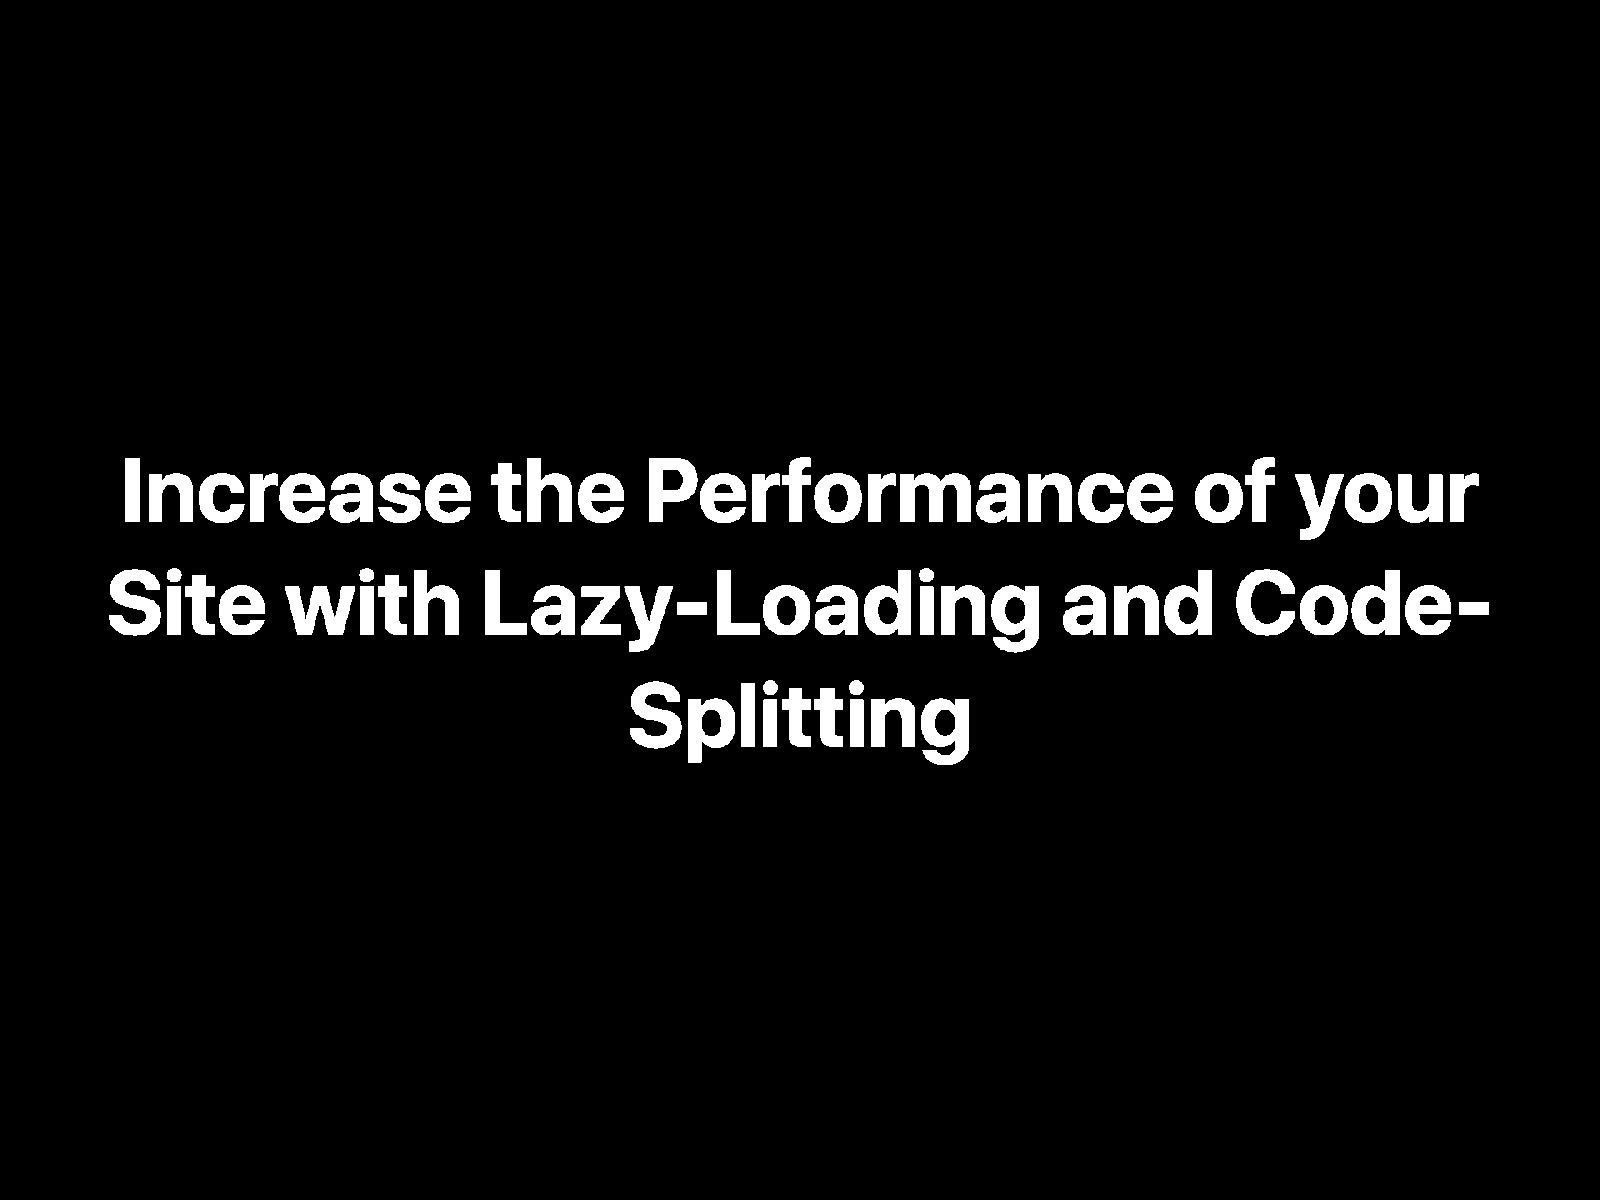 Increase the Performance of your Site with Lazy-Loading and Code-Splitting